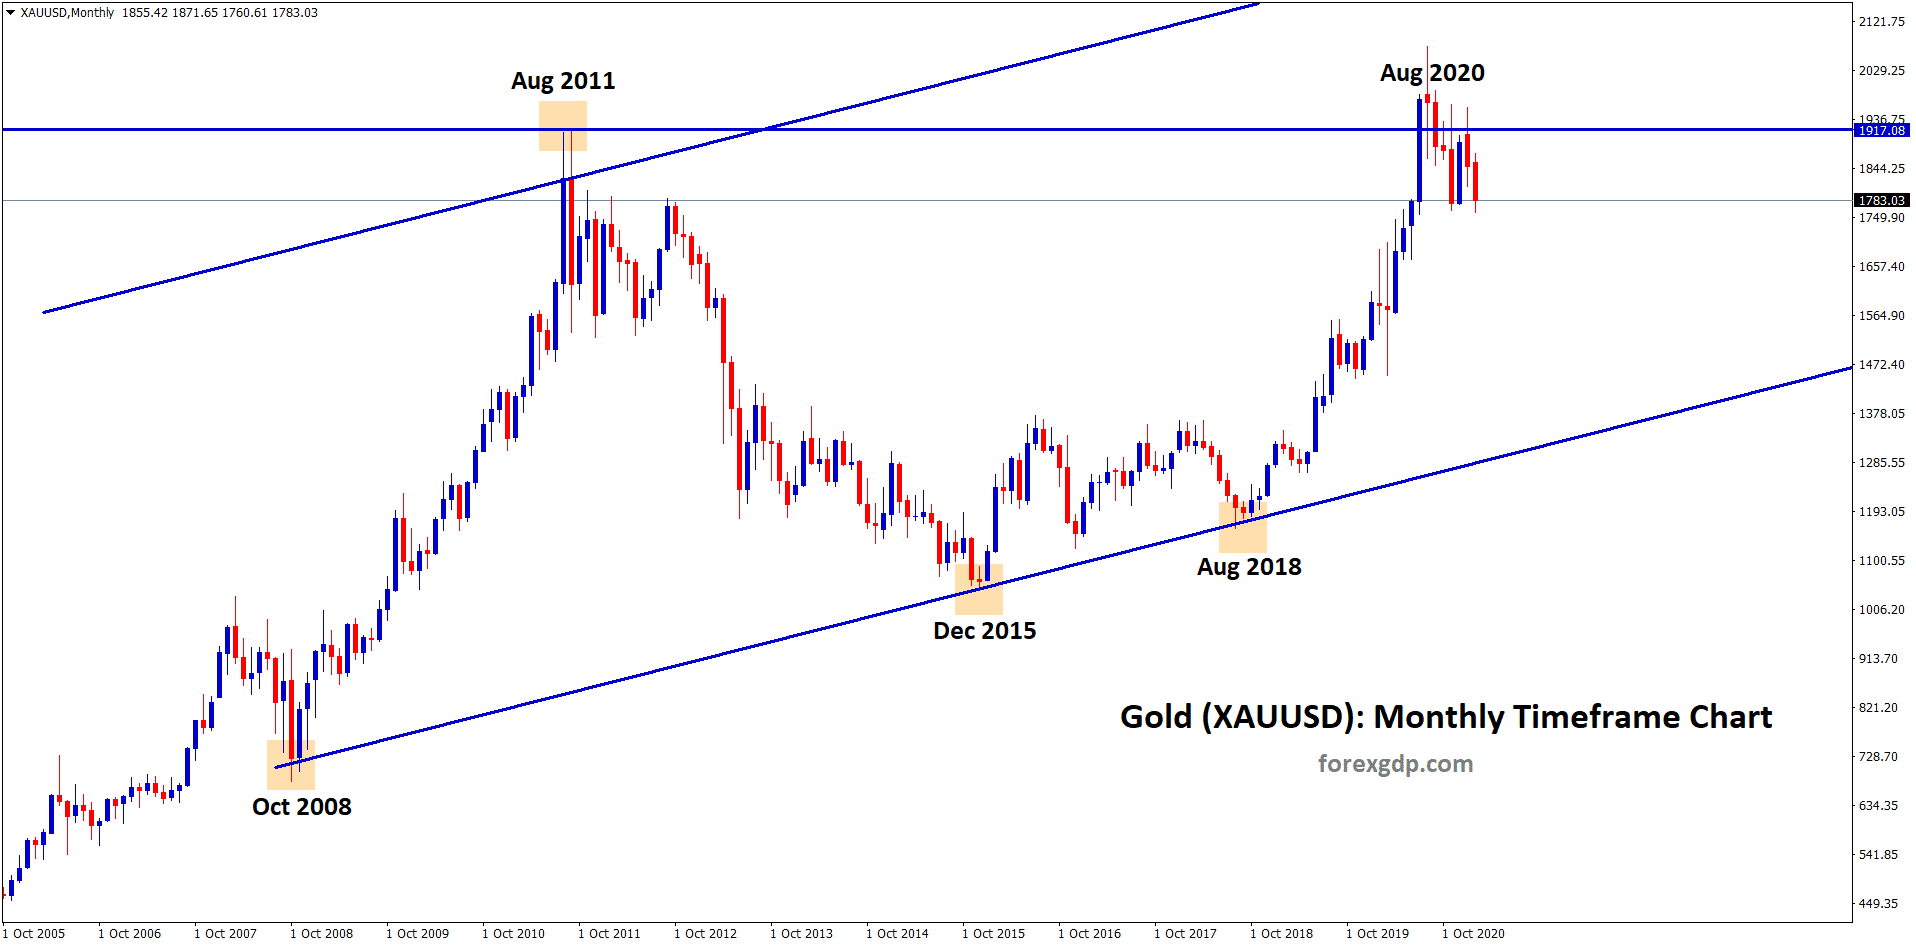 gold at the top resistance zone in the monthly timeframe chart